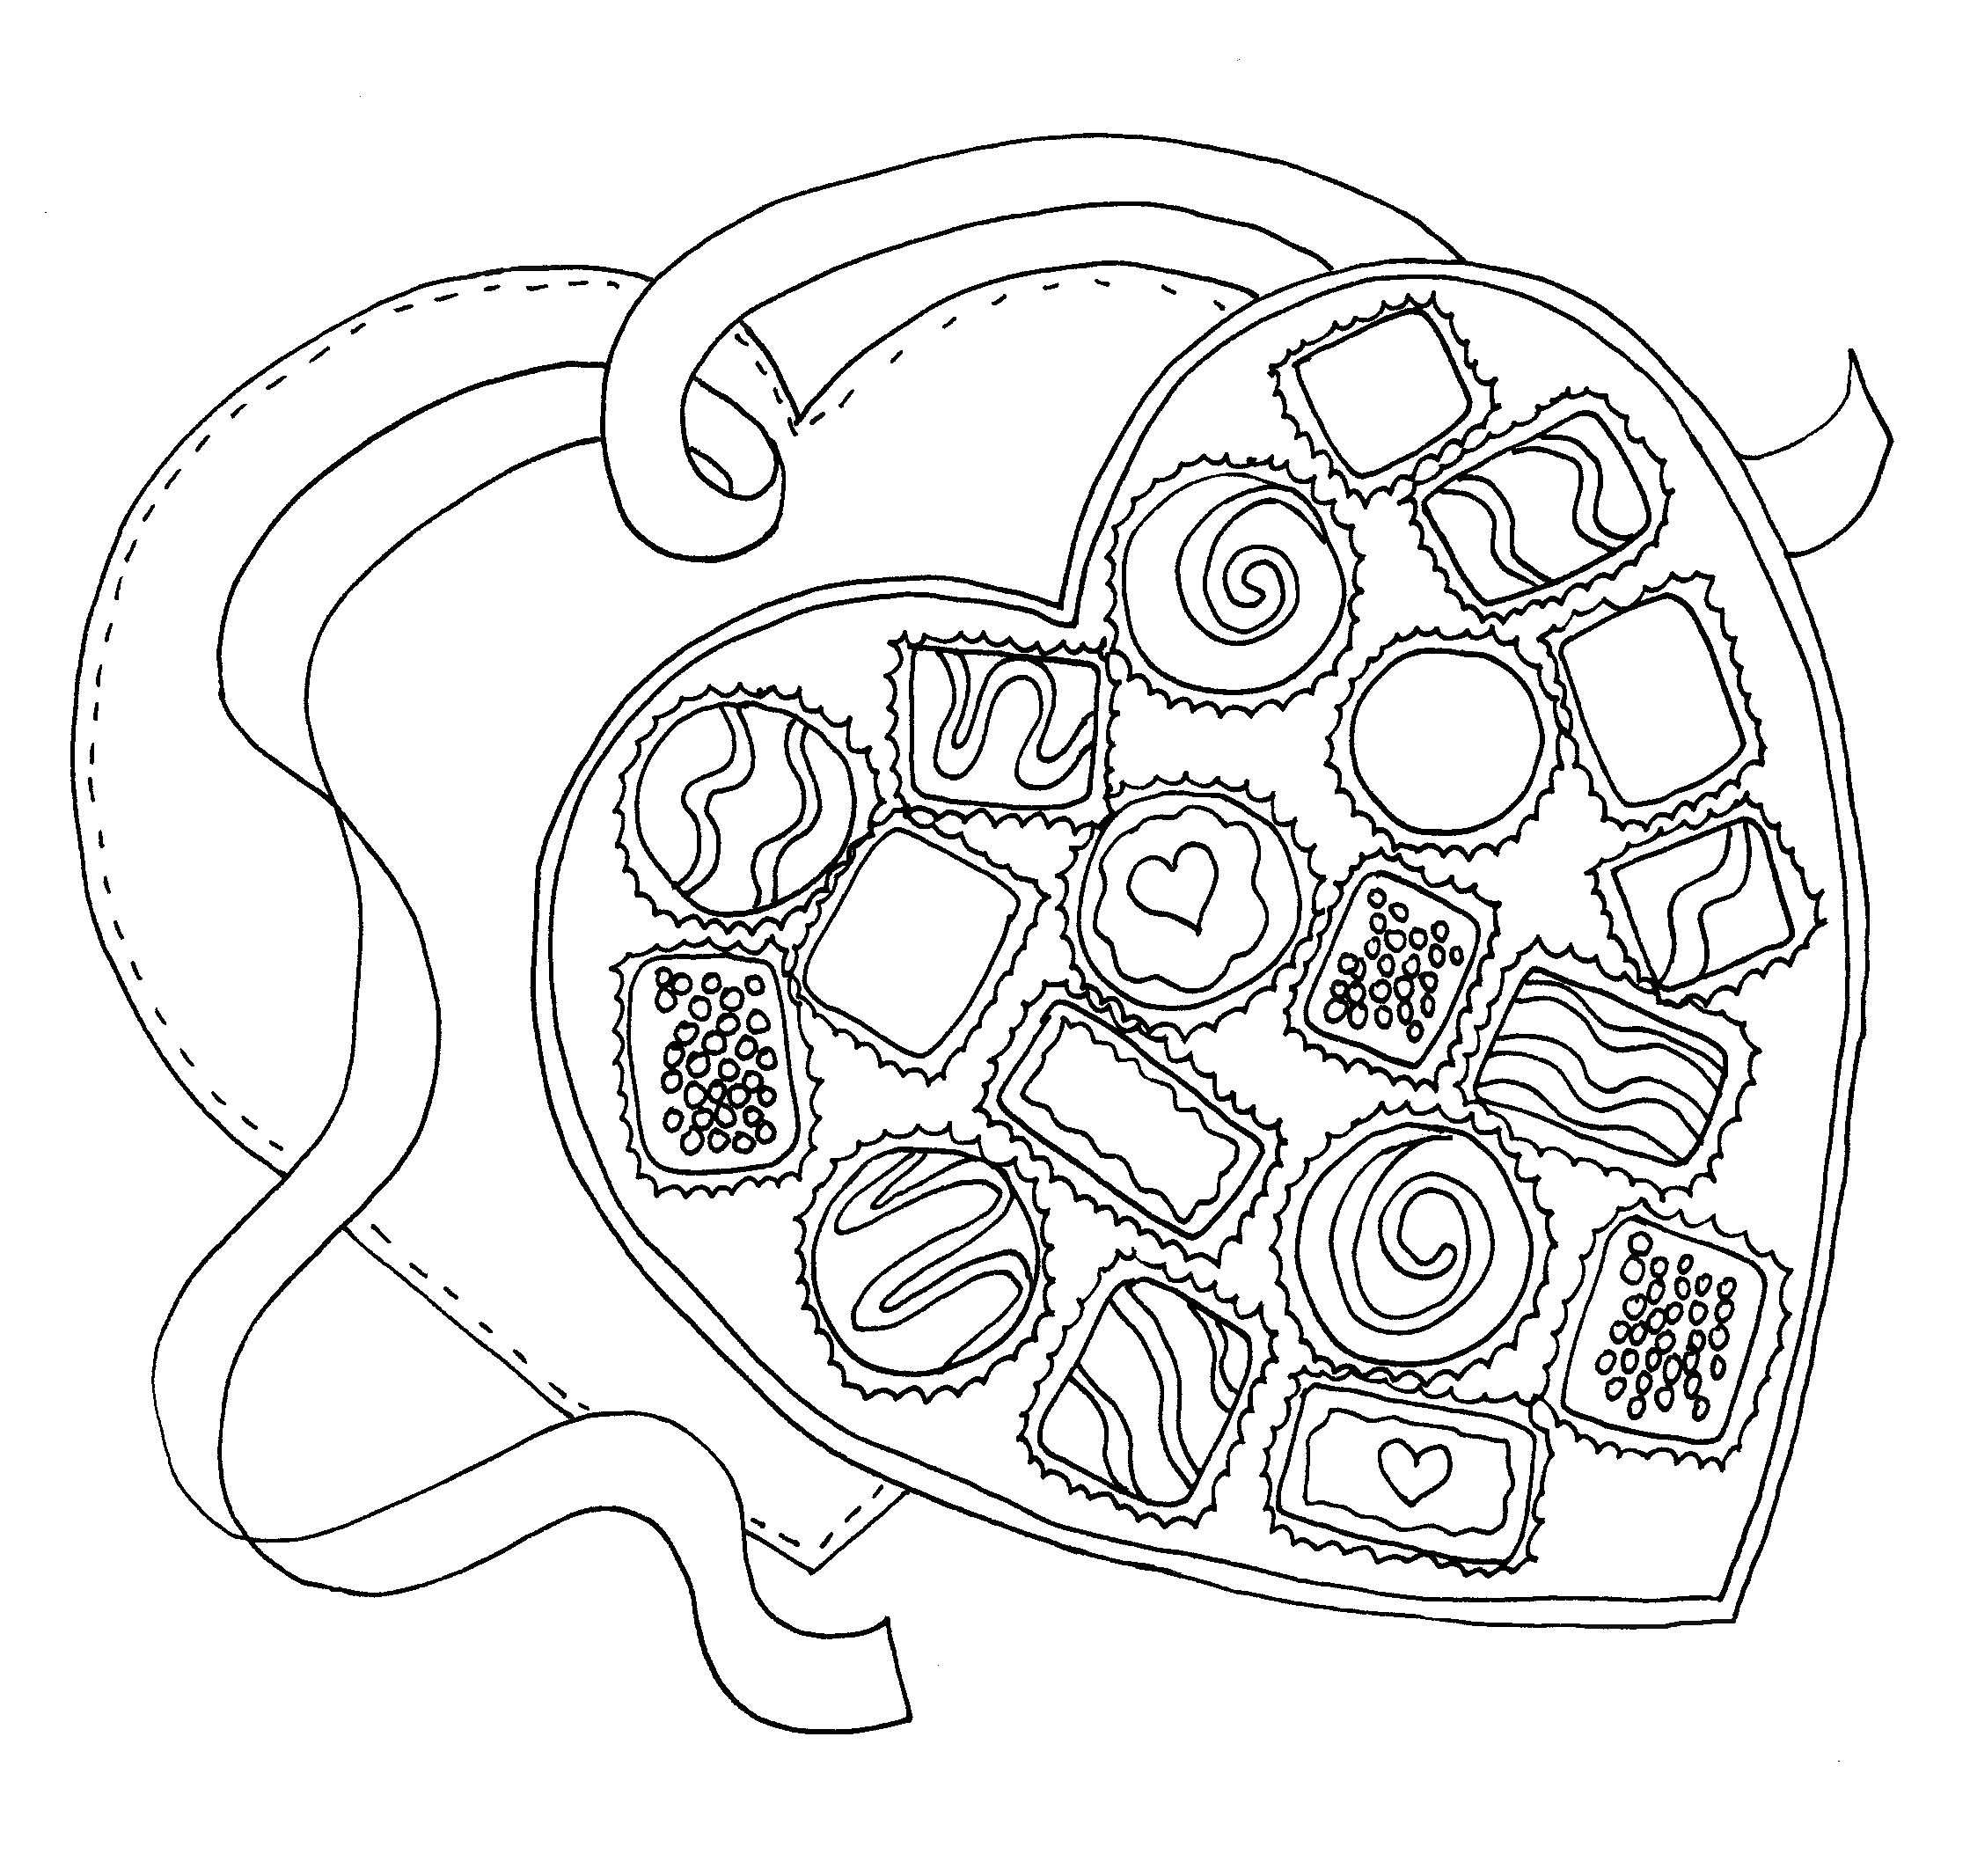 valentine chocolate box coloring page - Google Search | haft ...